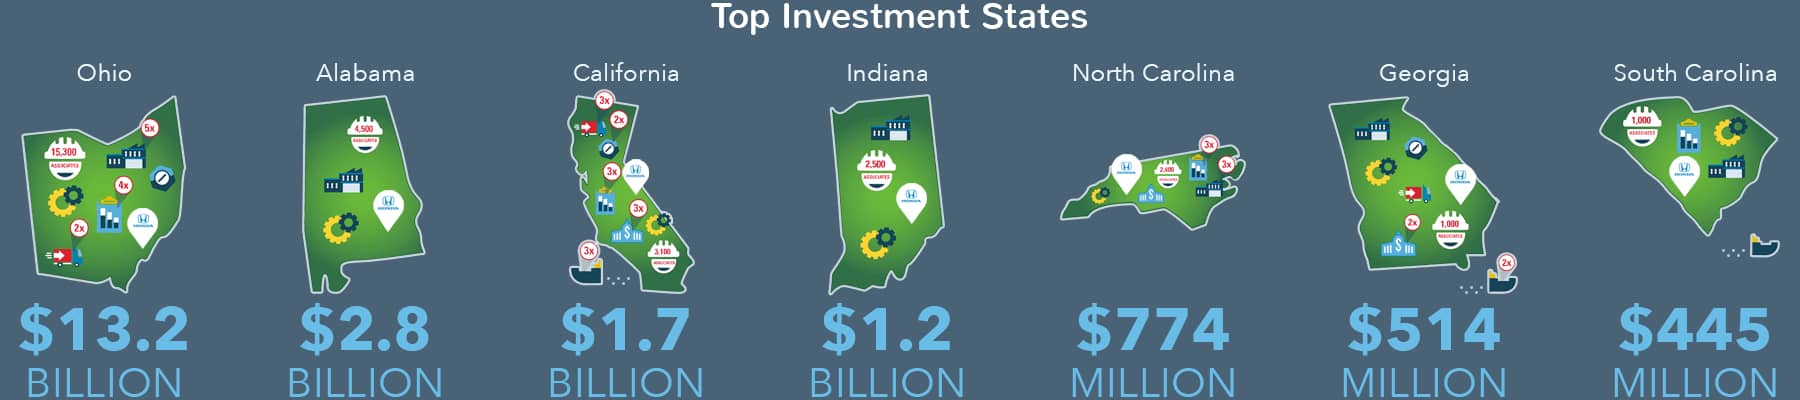 Top Investment States